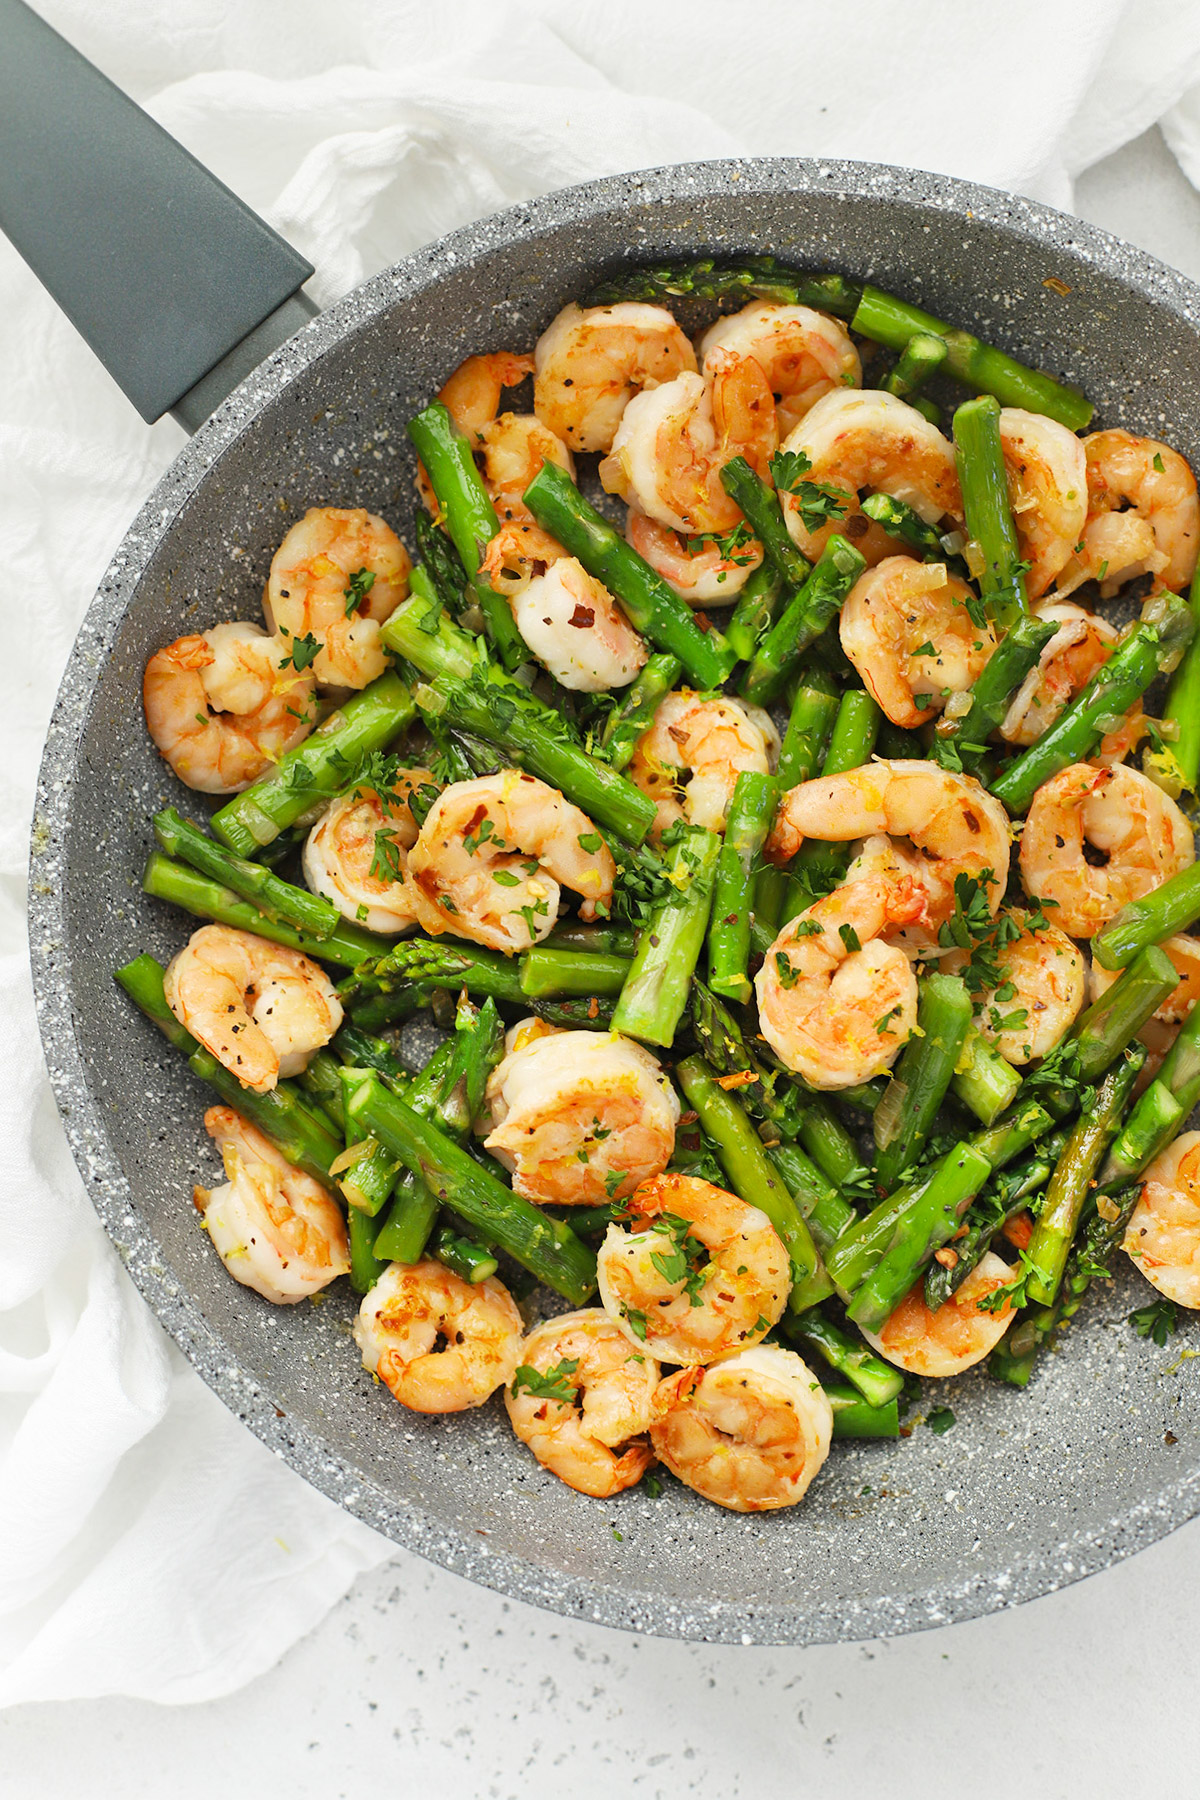 Overhead view of a skillet with lemon shrimp and asparagus